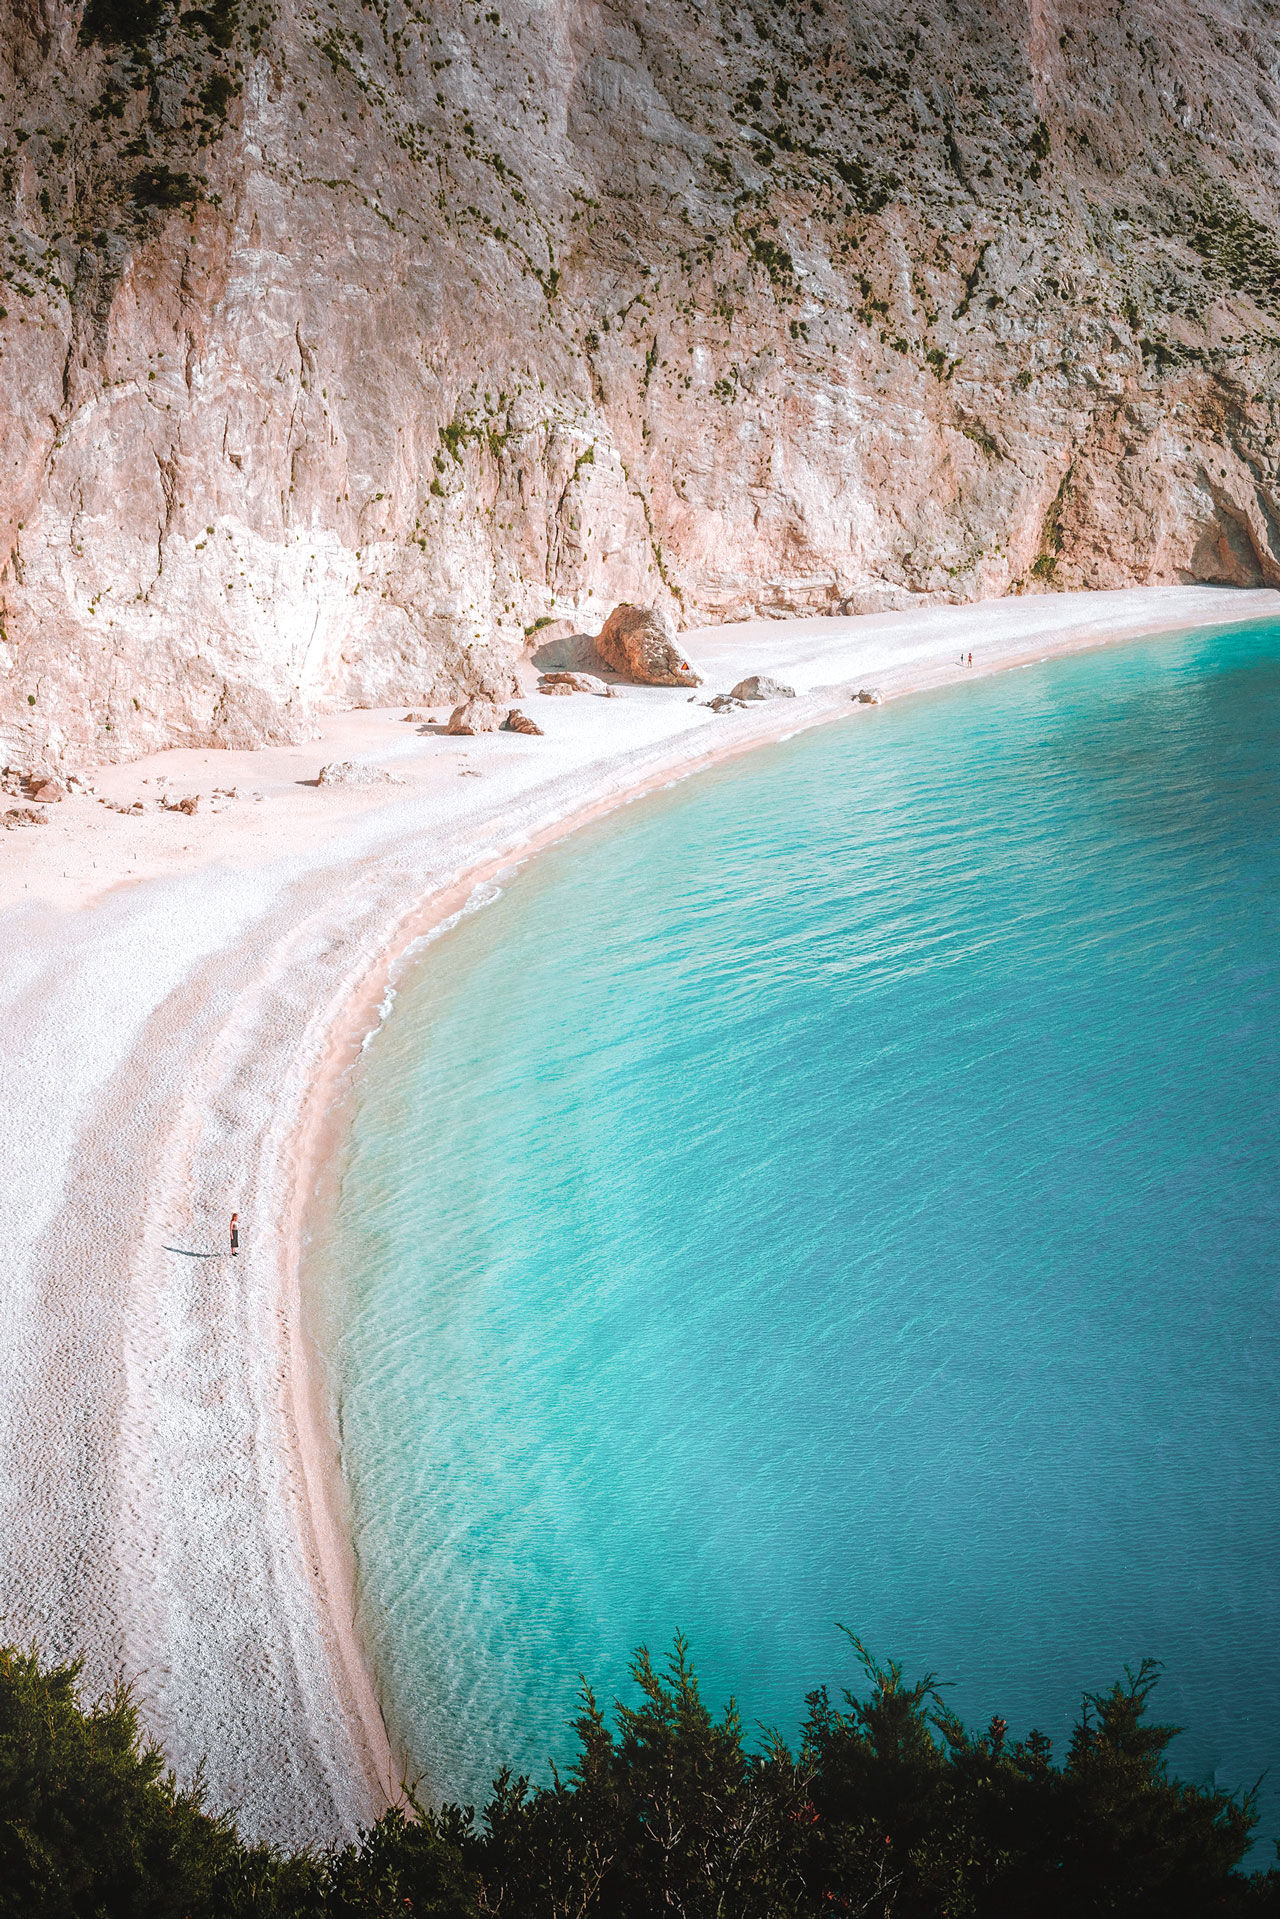 A day on Porto Katsiki beach is about enjoying nature at its most alluring